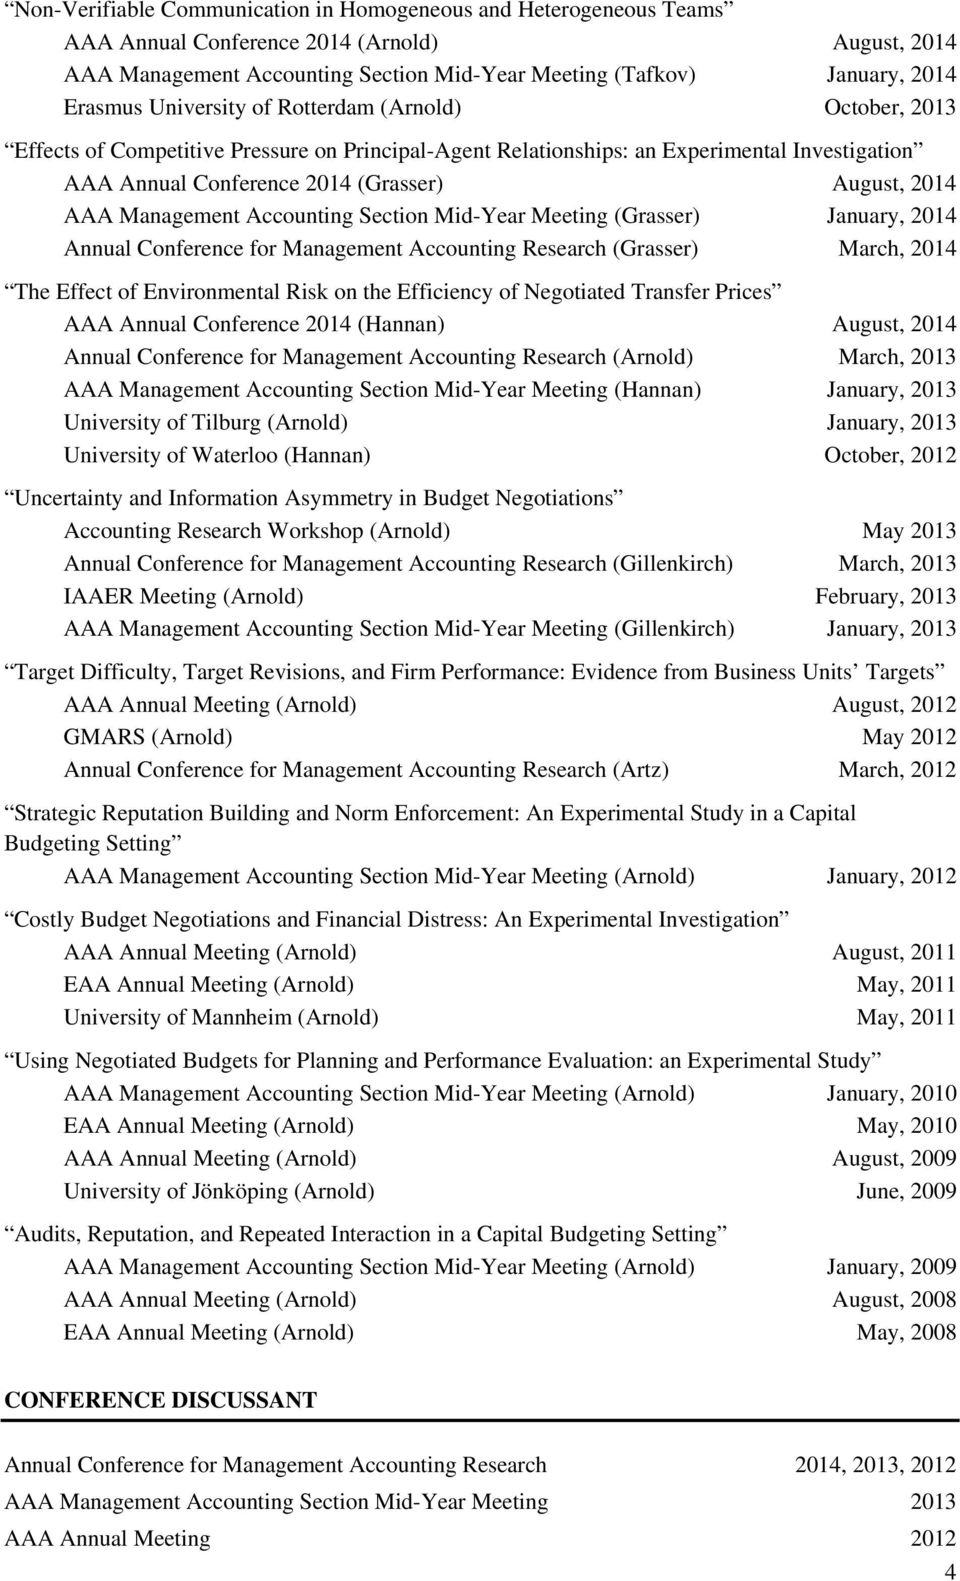 Management Accounting Section Mid-Year Meeting (Grasser) January, 2014 Annual Conference for Management Accounting Research (Grasser) March, 2014 The Effect of Environmental Risk on the Efficiency of